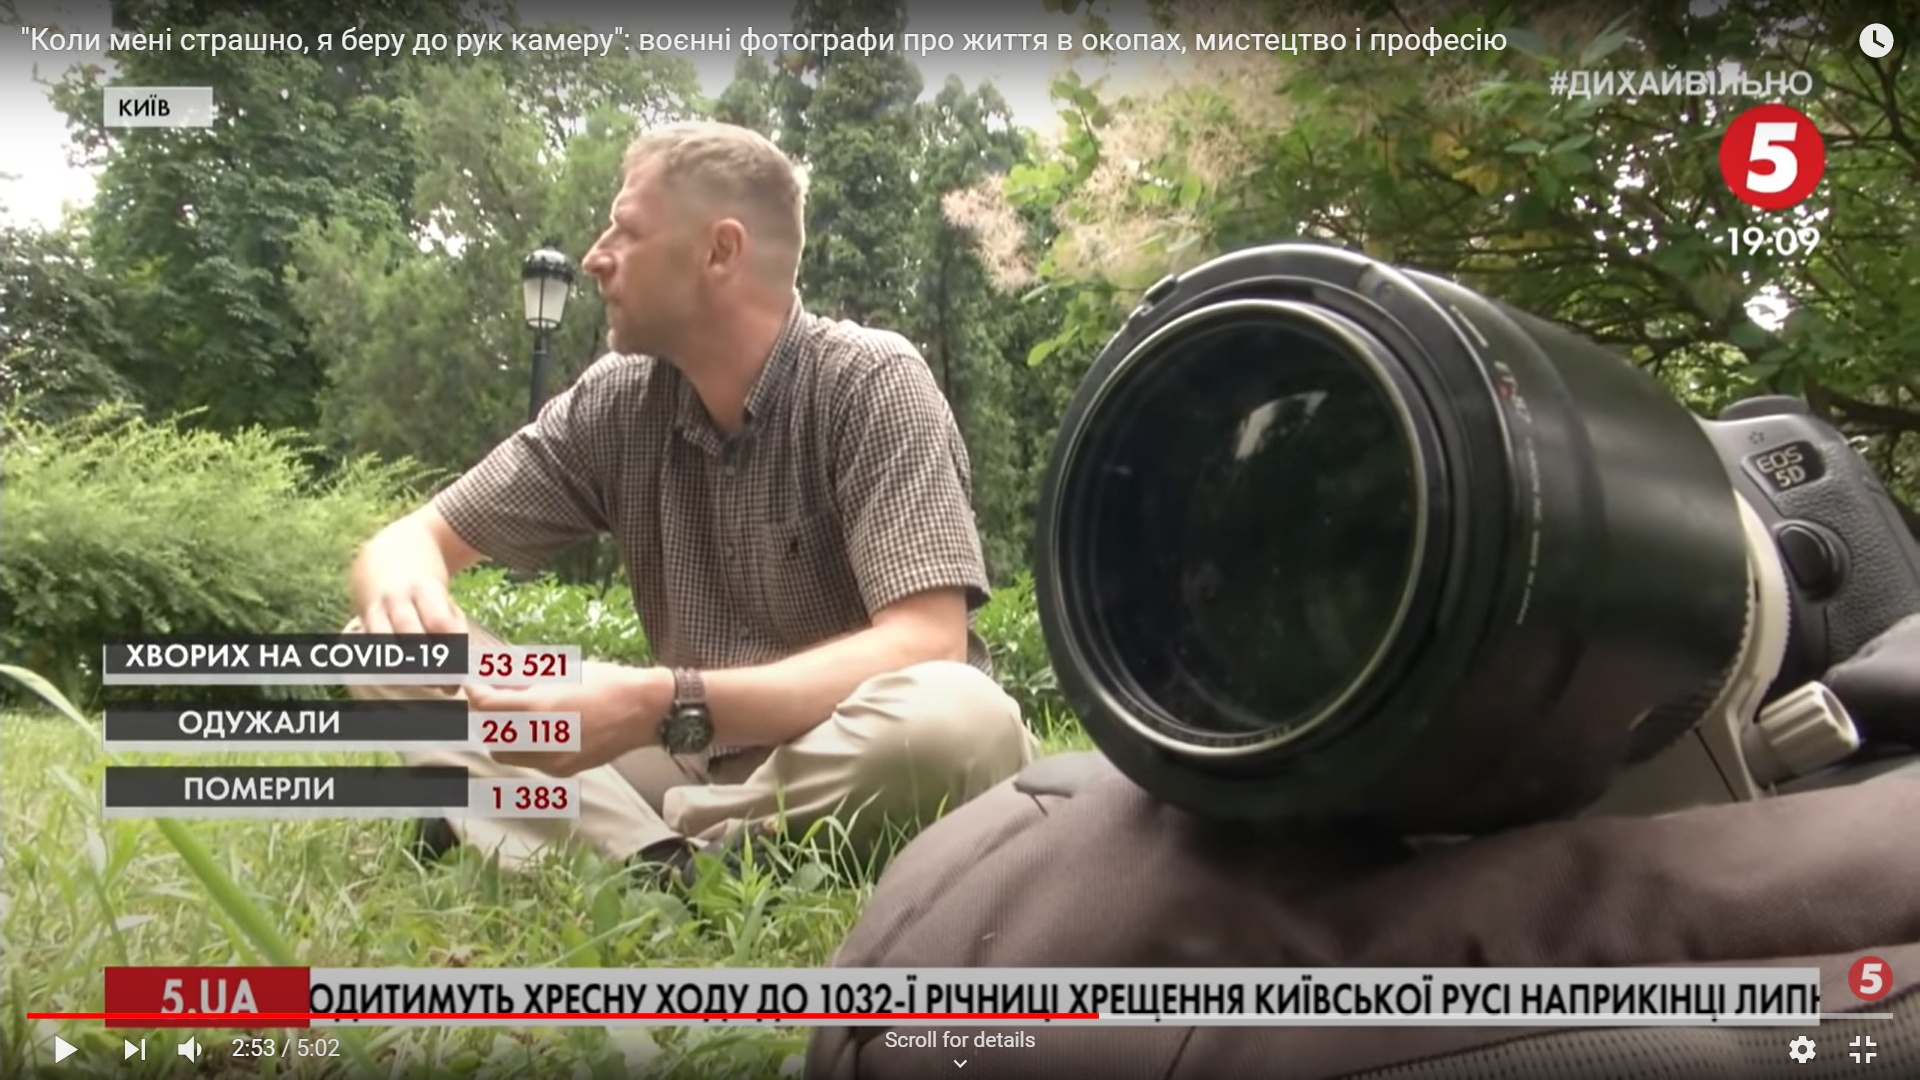 Military war ukrainian photographer Andriy Dubchak interview for 5tv